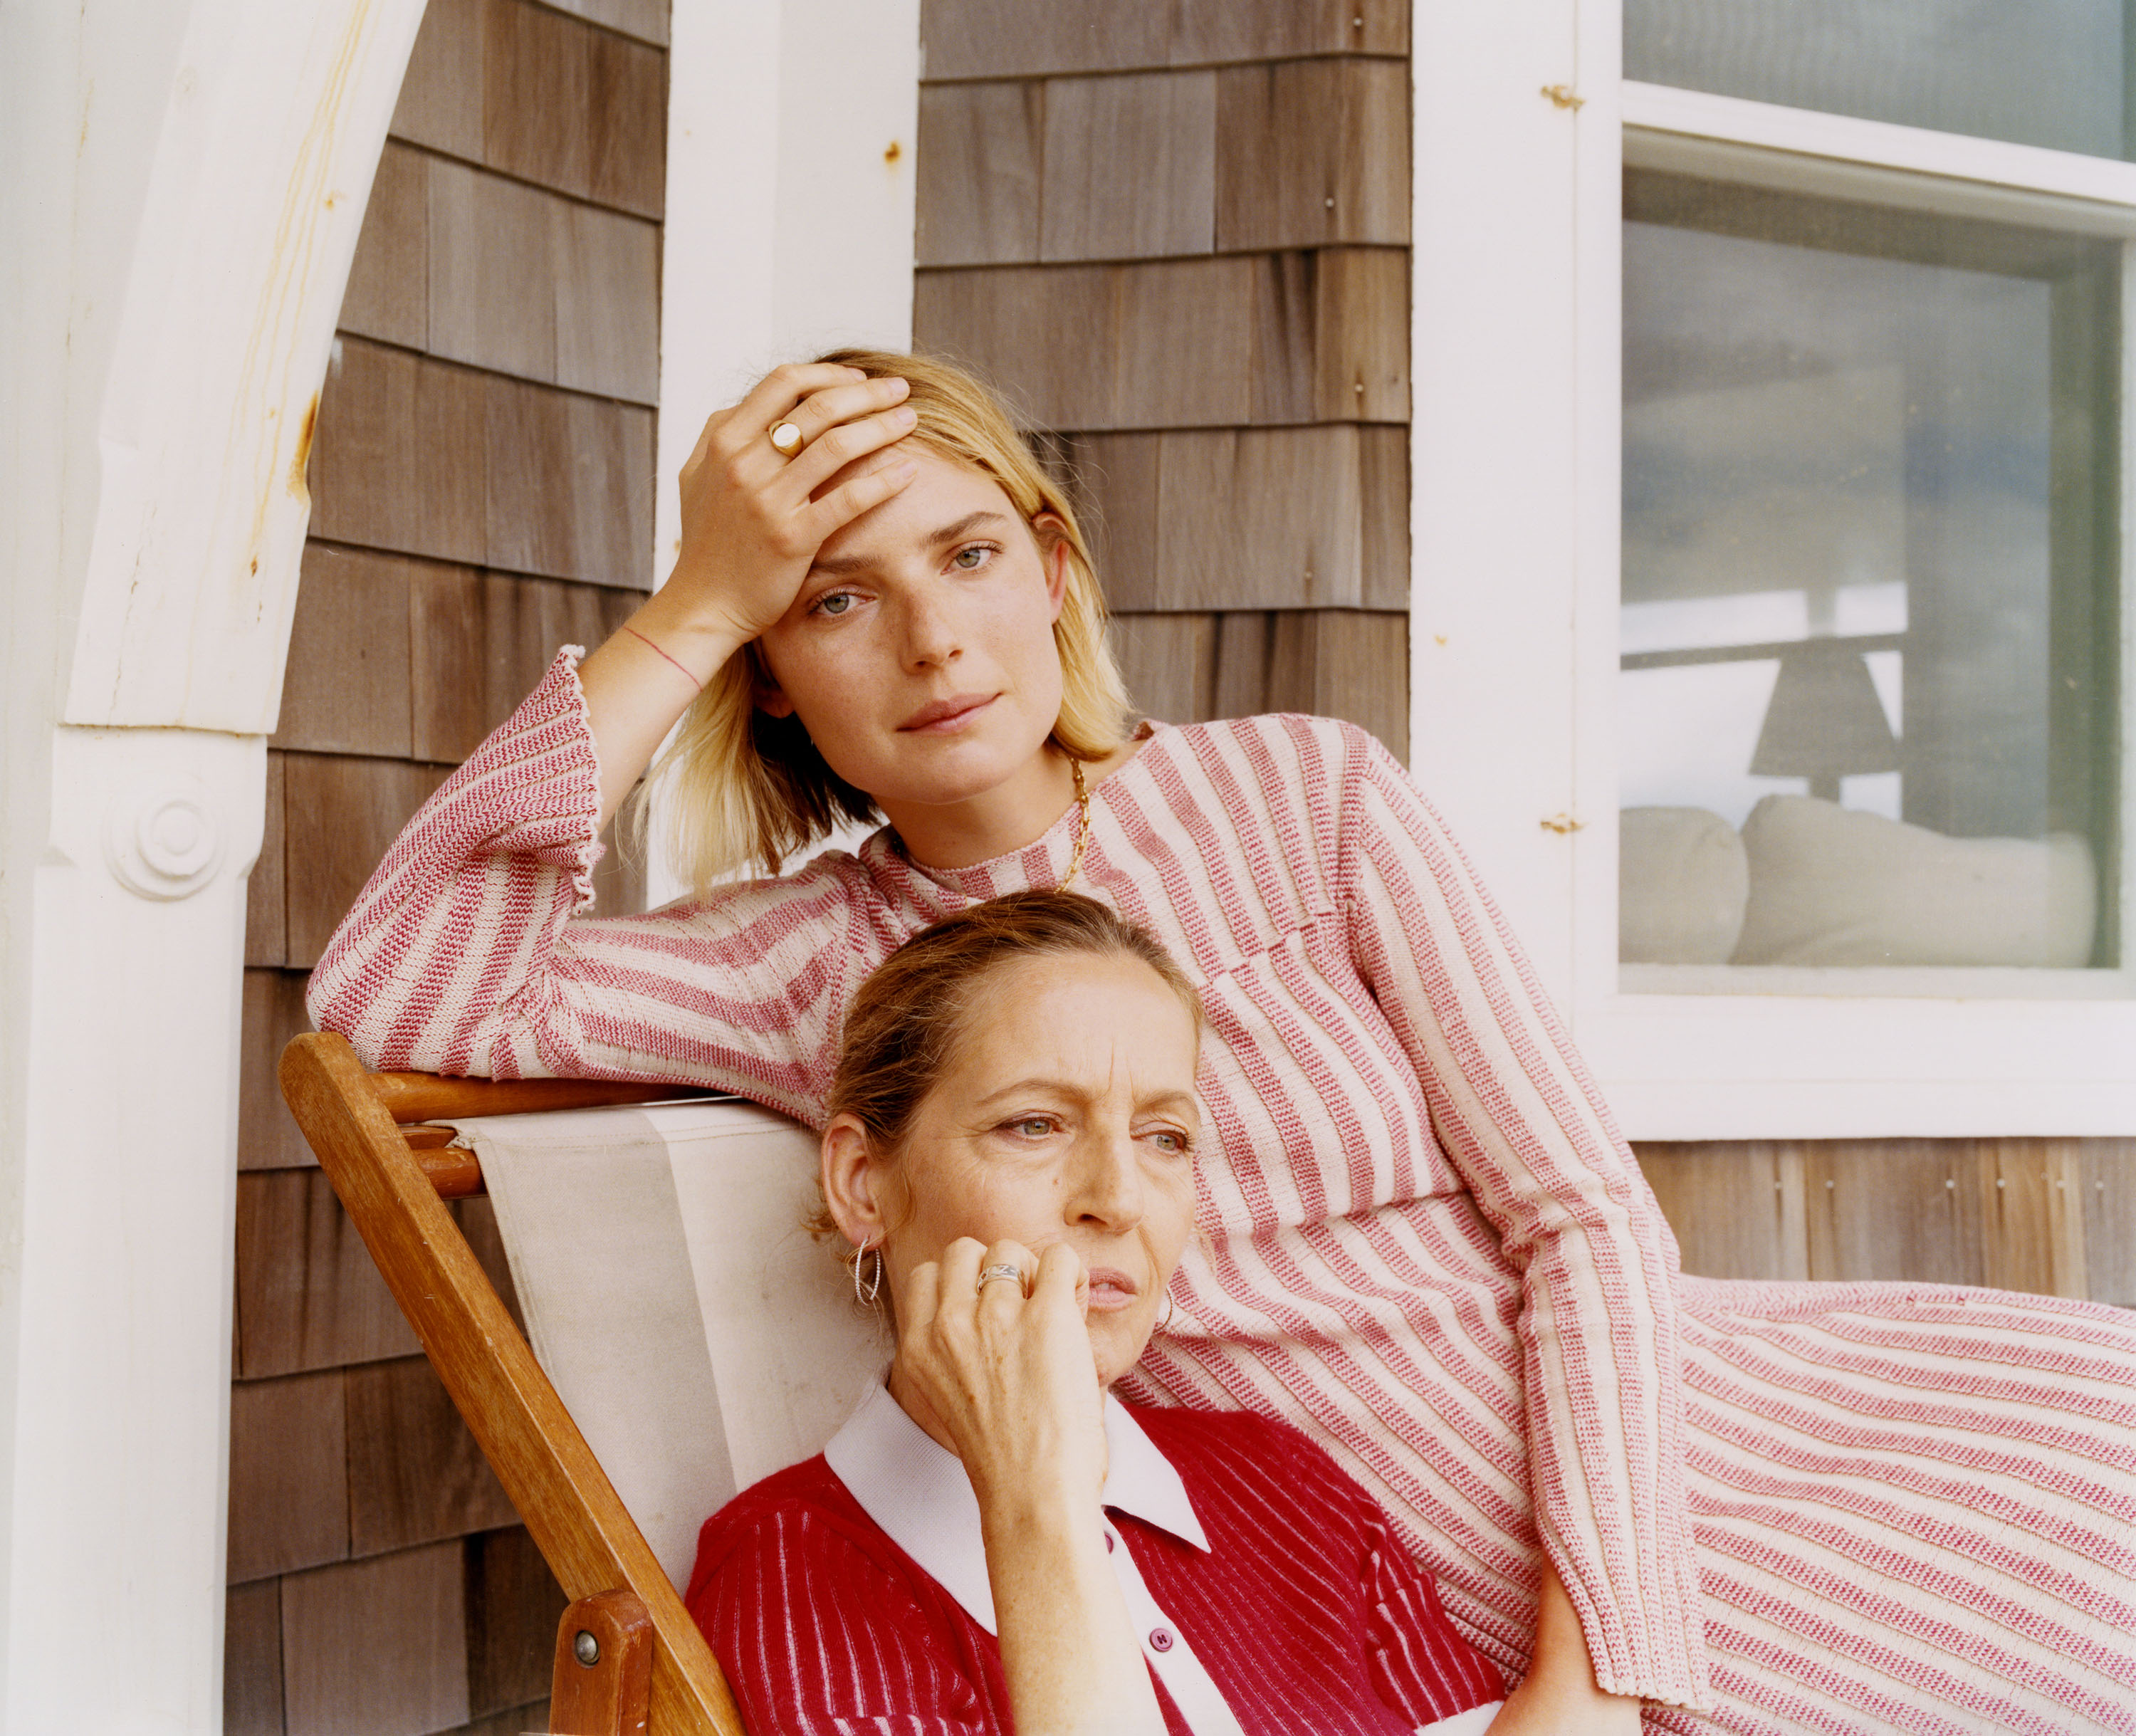 """I shot family portraits for *Tiffany & Co*. in a house constructed by shipbuilders in 1877, located at the top a dune in Wainscott in the Hamptons. I remember the """"beach shack"""" was for sale at the time, for 65 million dollars.* {Art Direction by Lilya Turki}* - © Maciek Pożoga"""